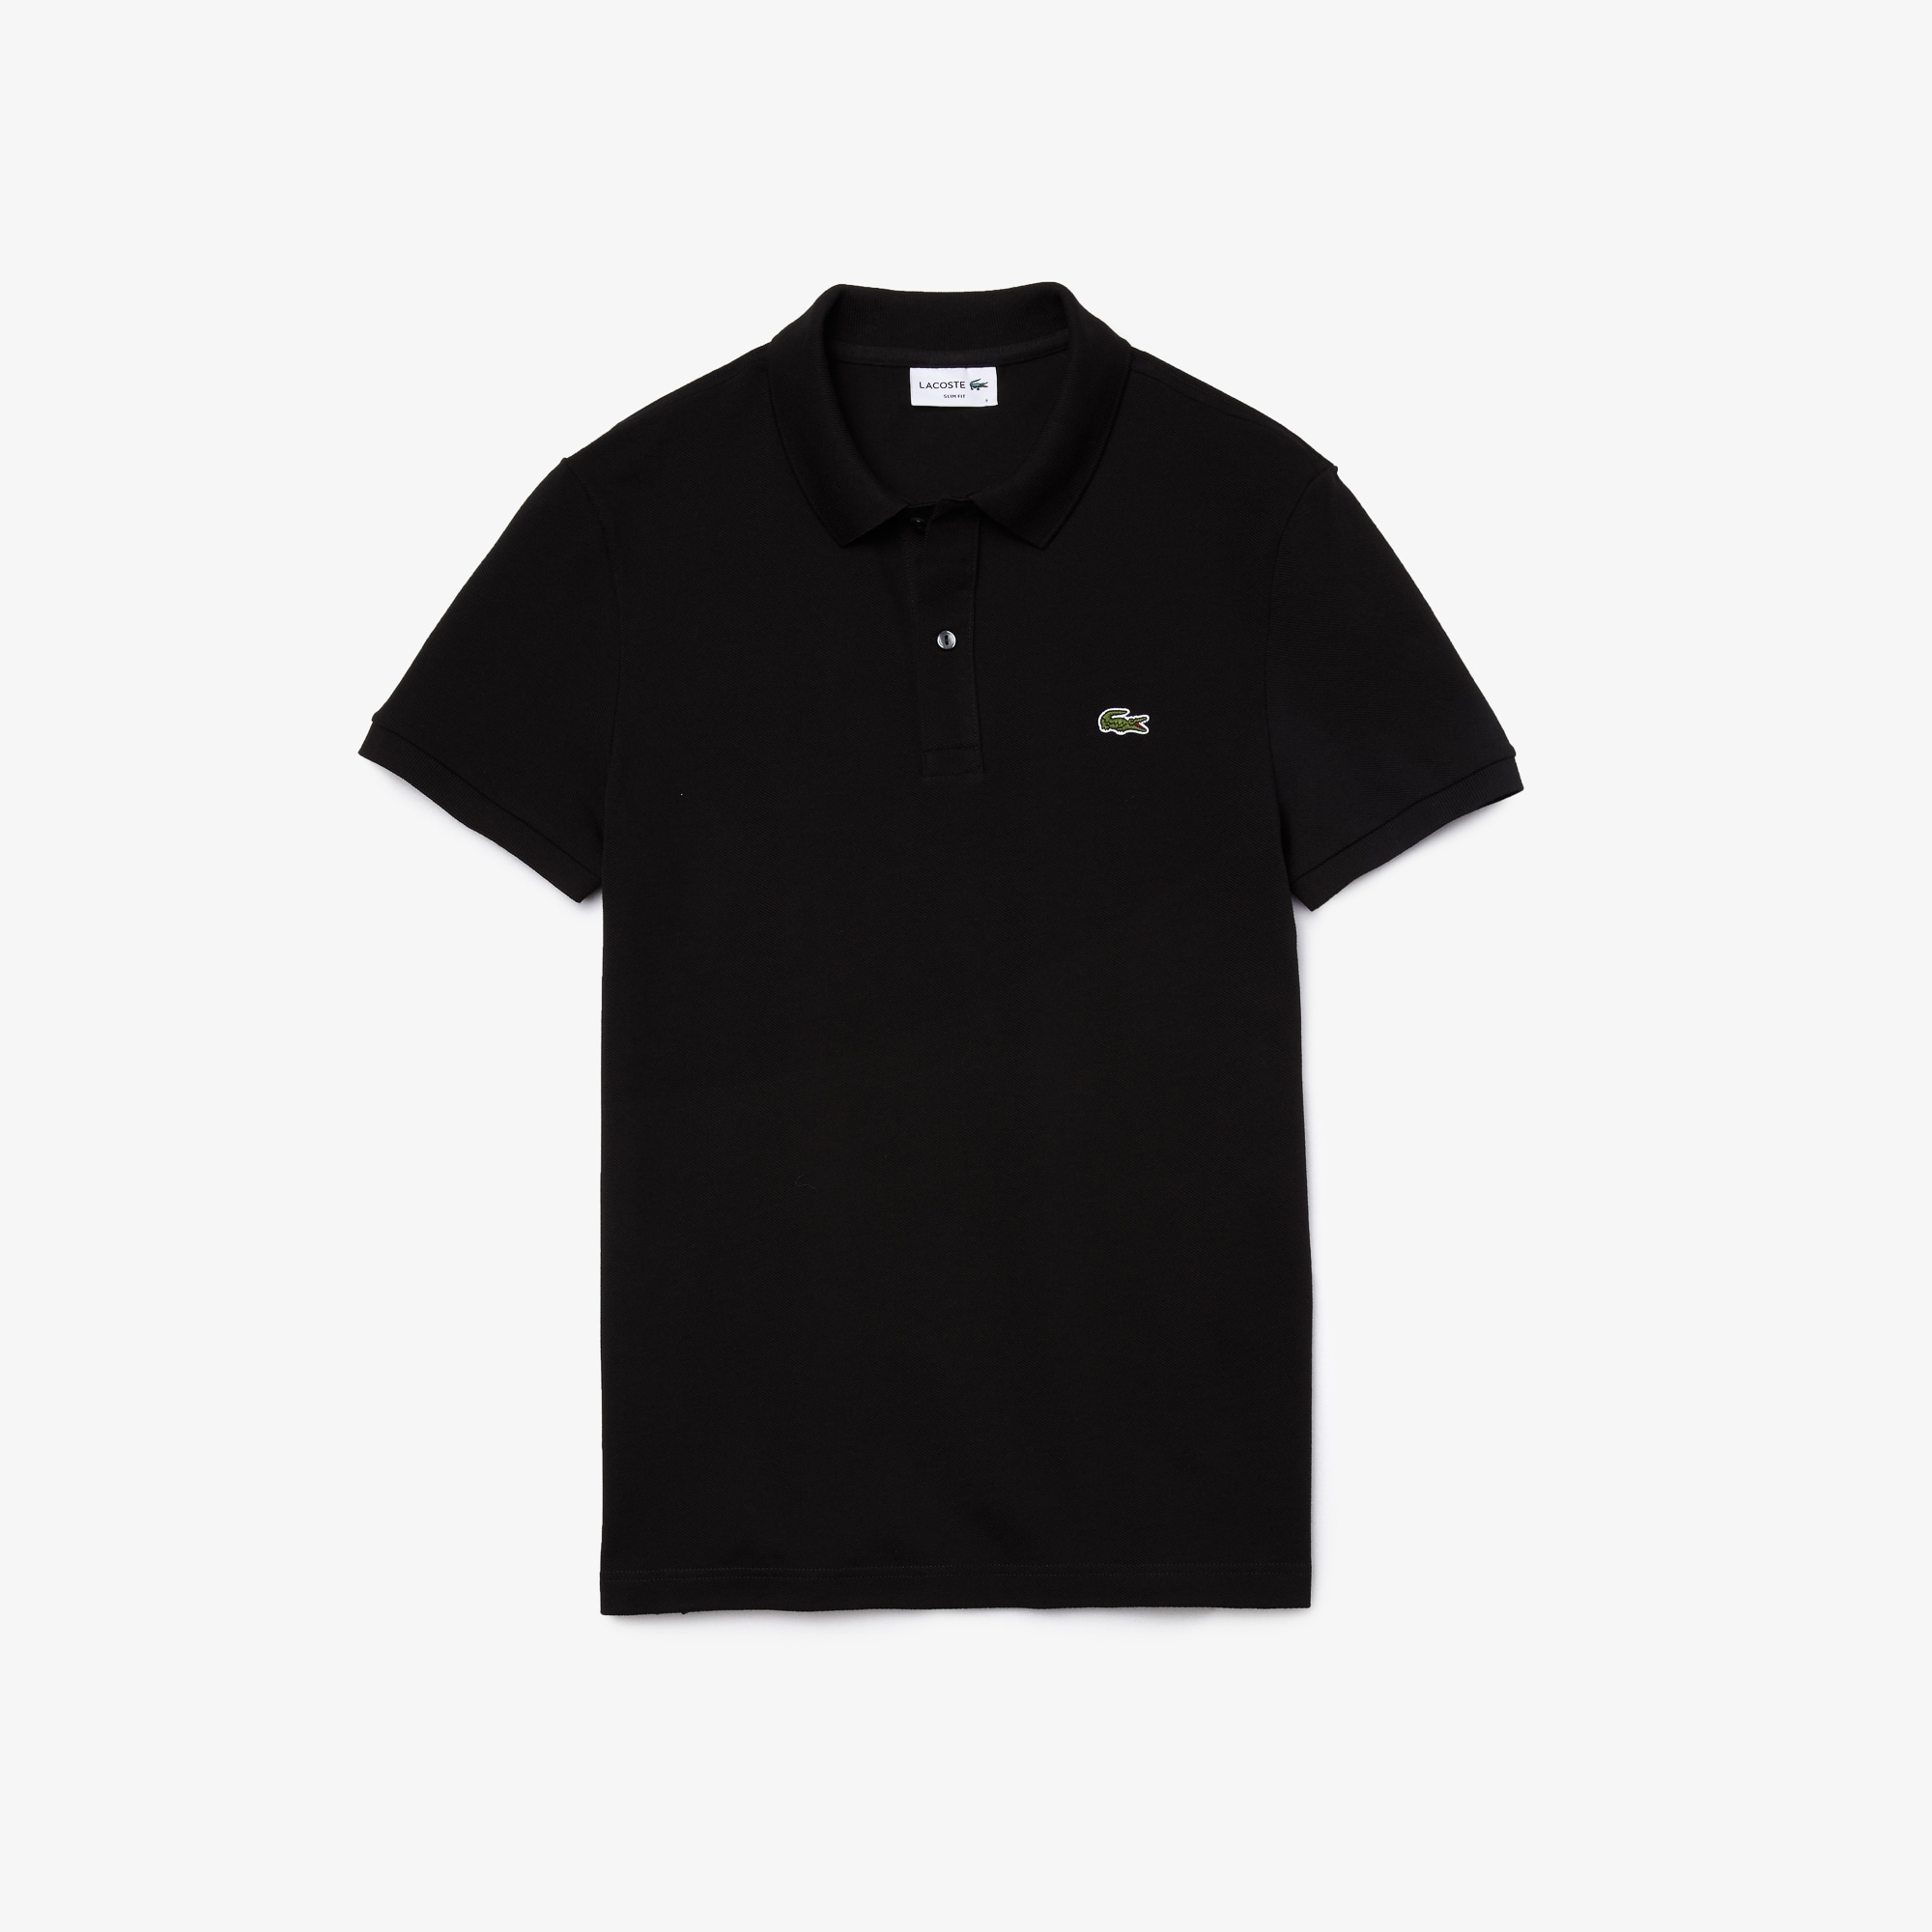 9c4f8d60 Men's Slim fit Lacoste Polo Shirt in petit piqué